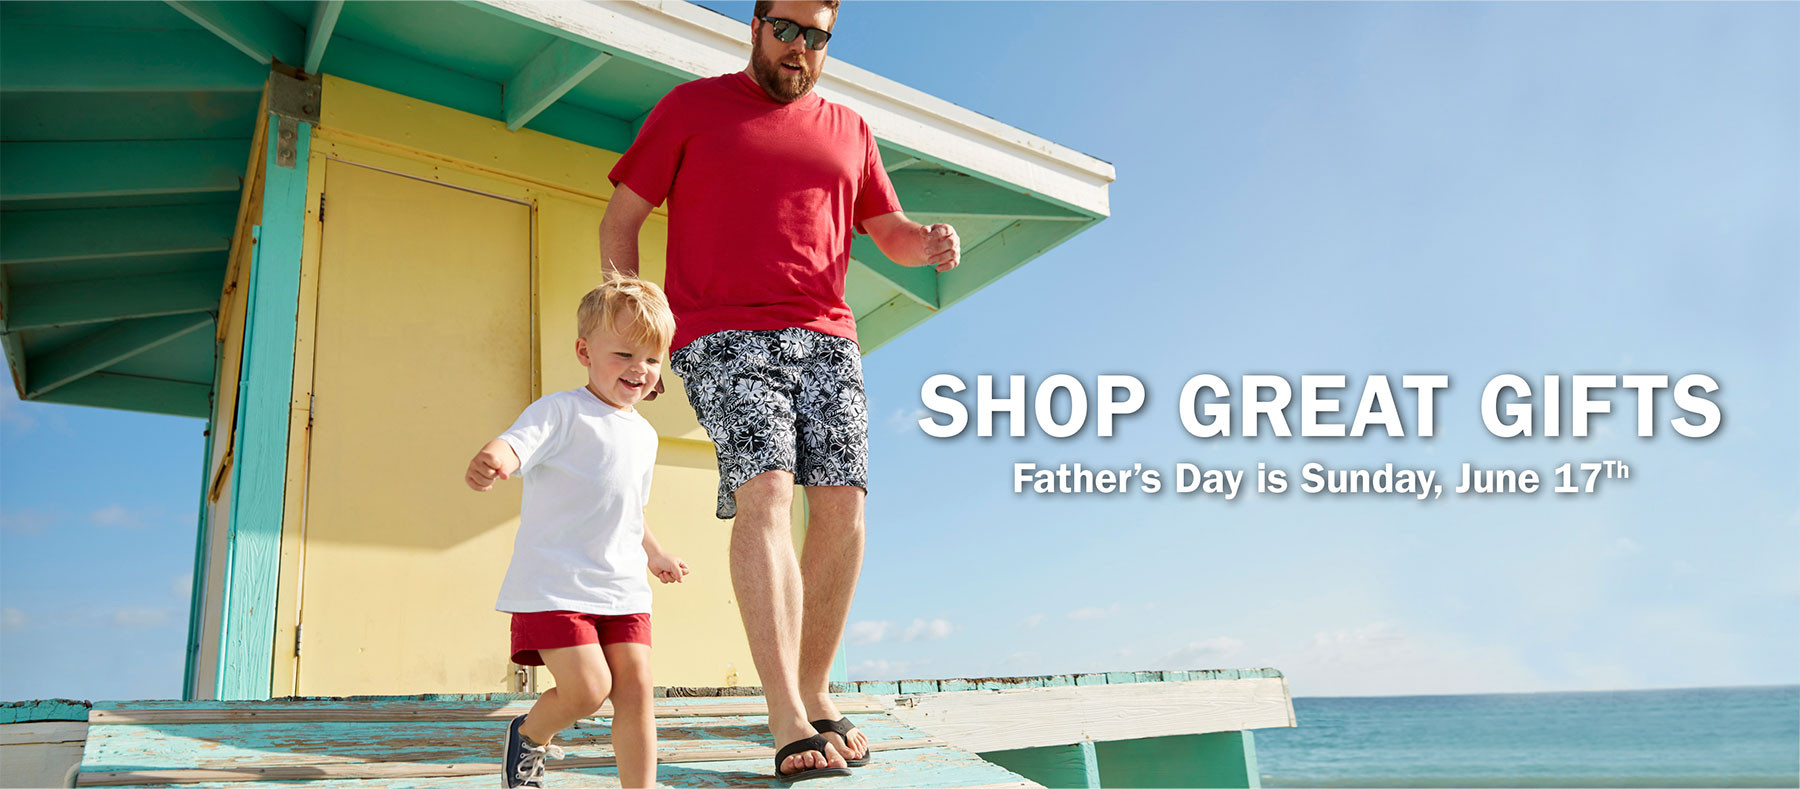 SHOP GREAT GIFTS FATHER'S DAY IN SUNDAY, JUNE 17TH